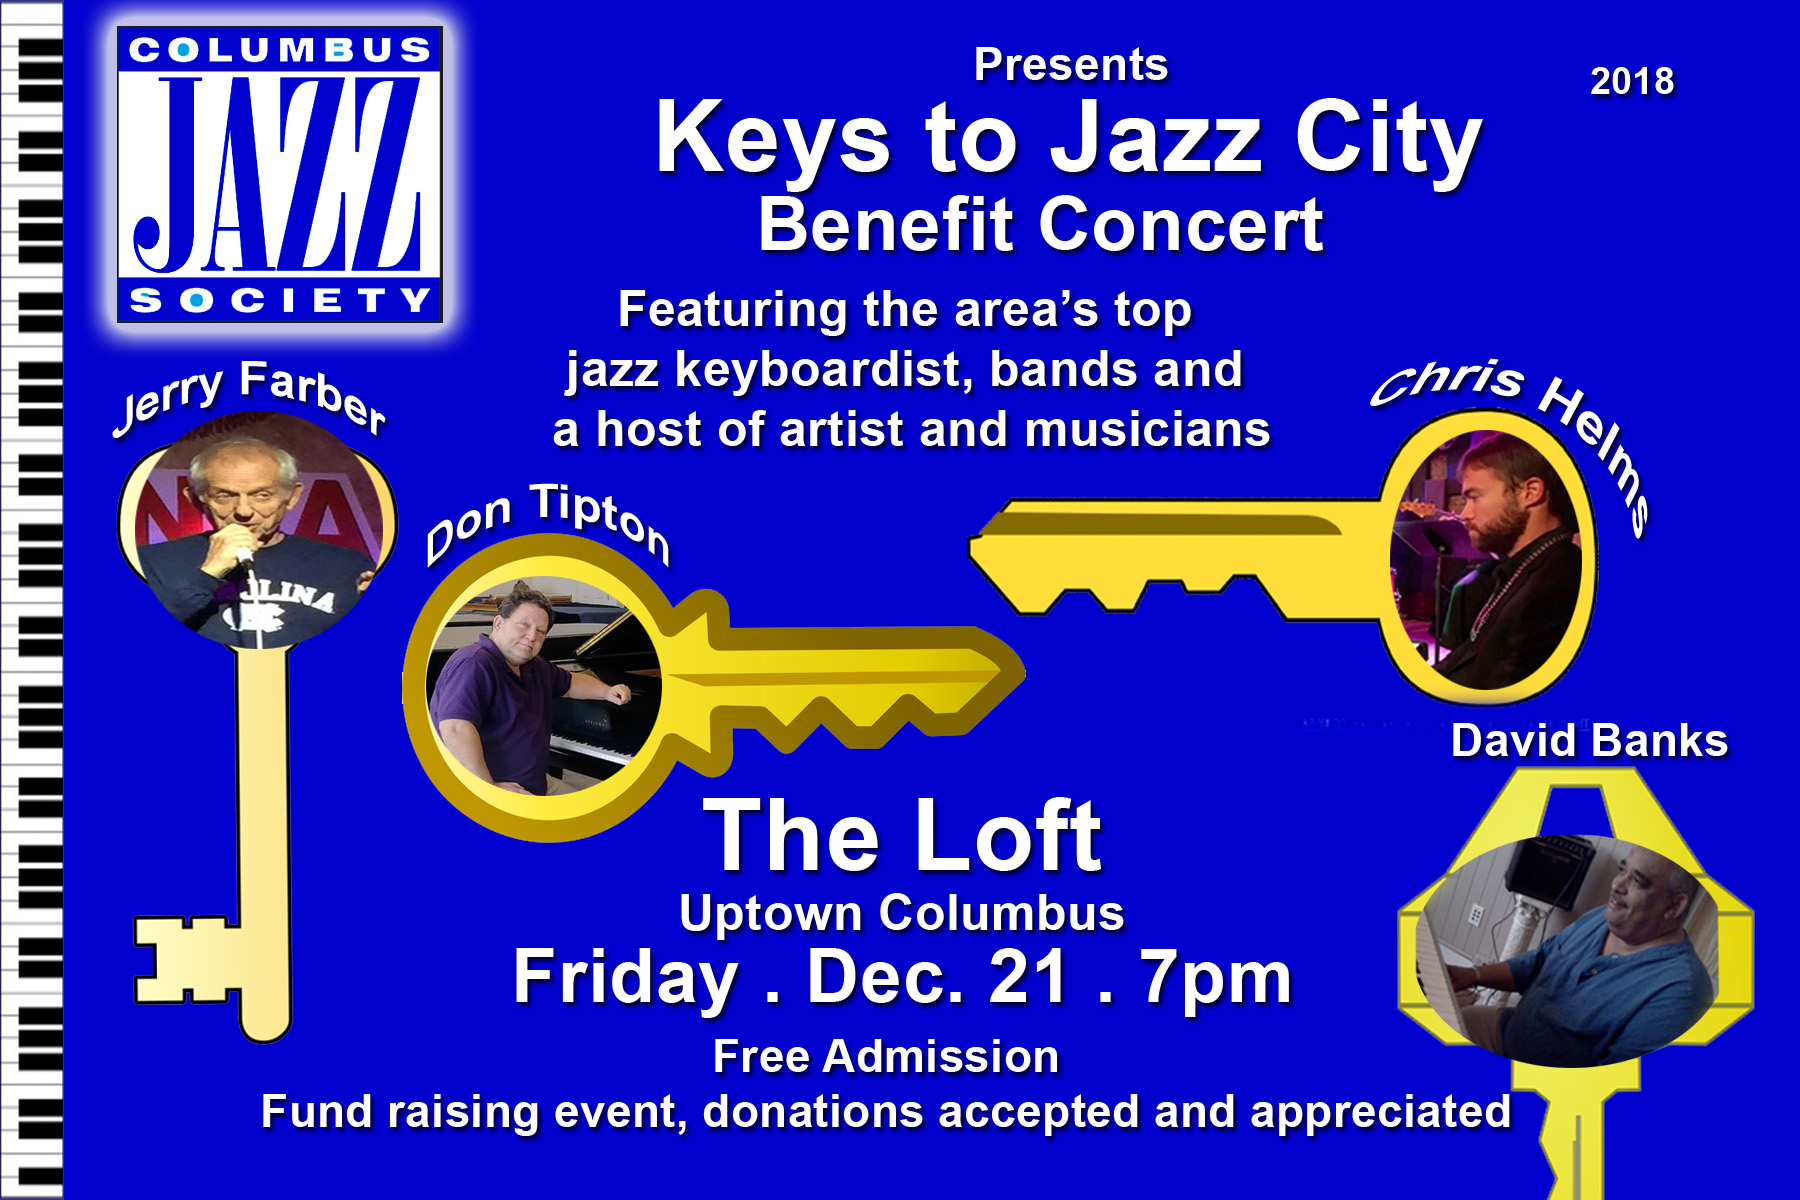 Keys to Jazz City